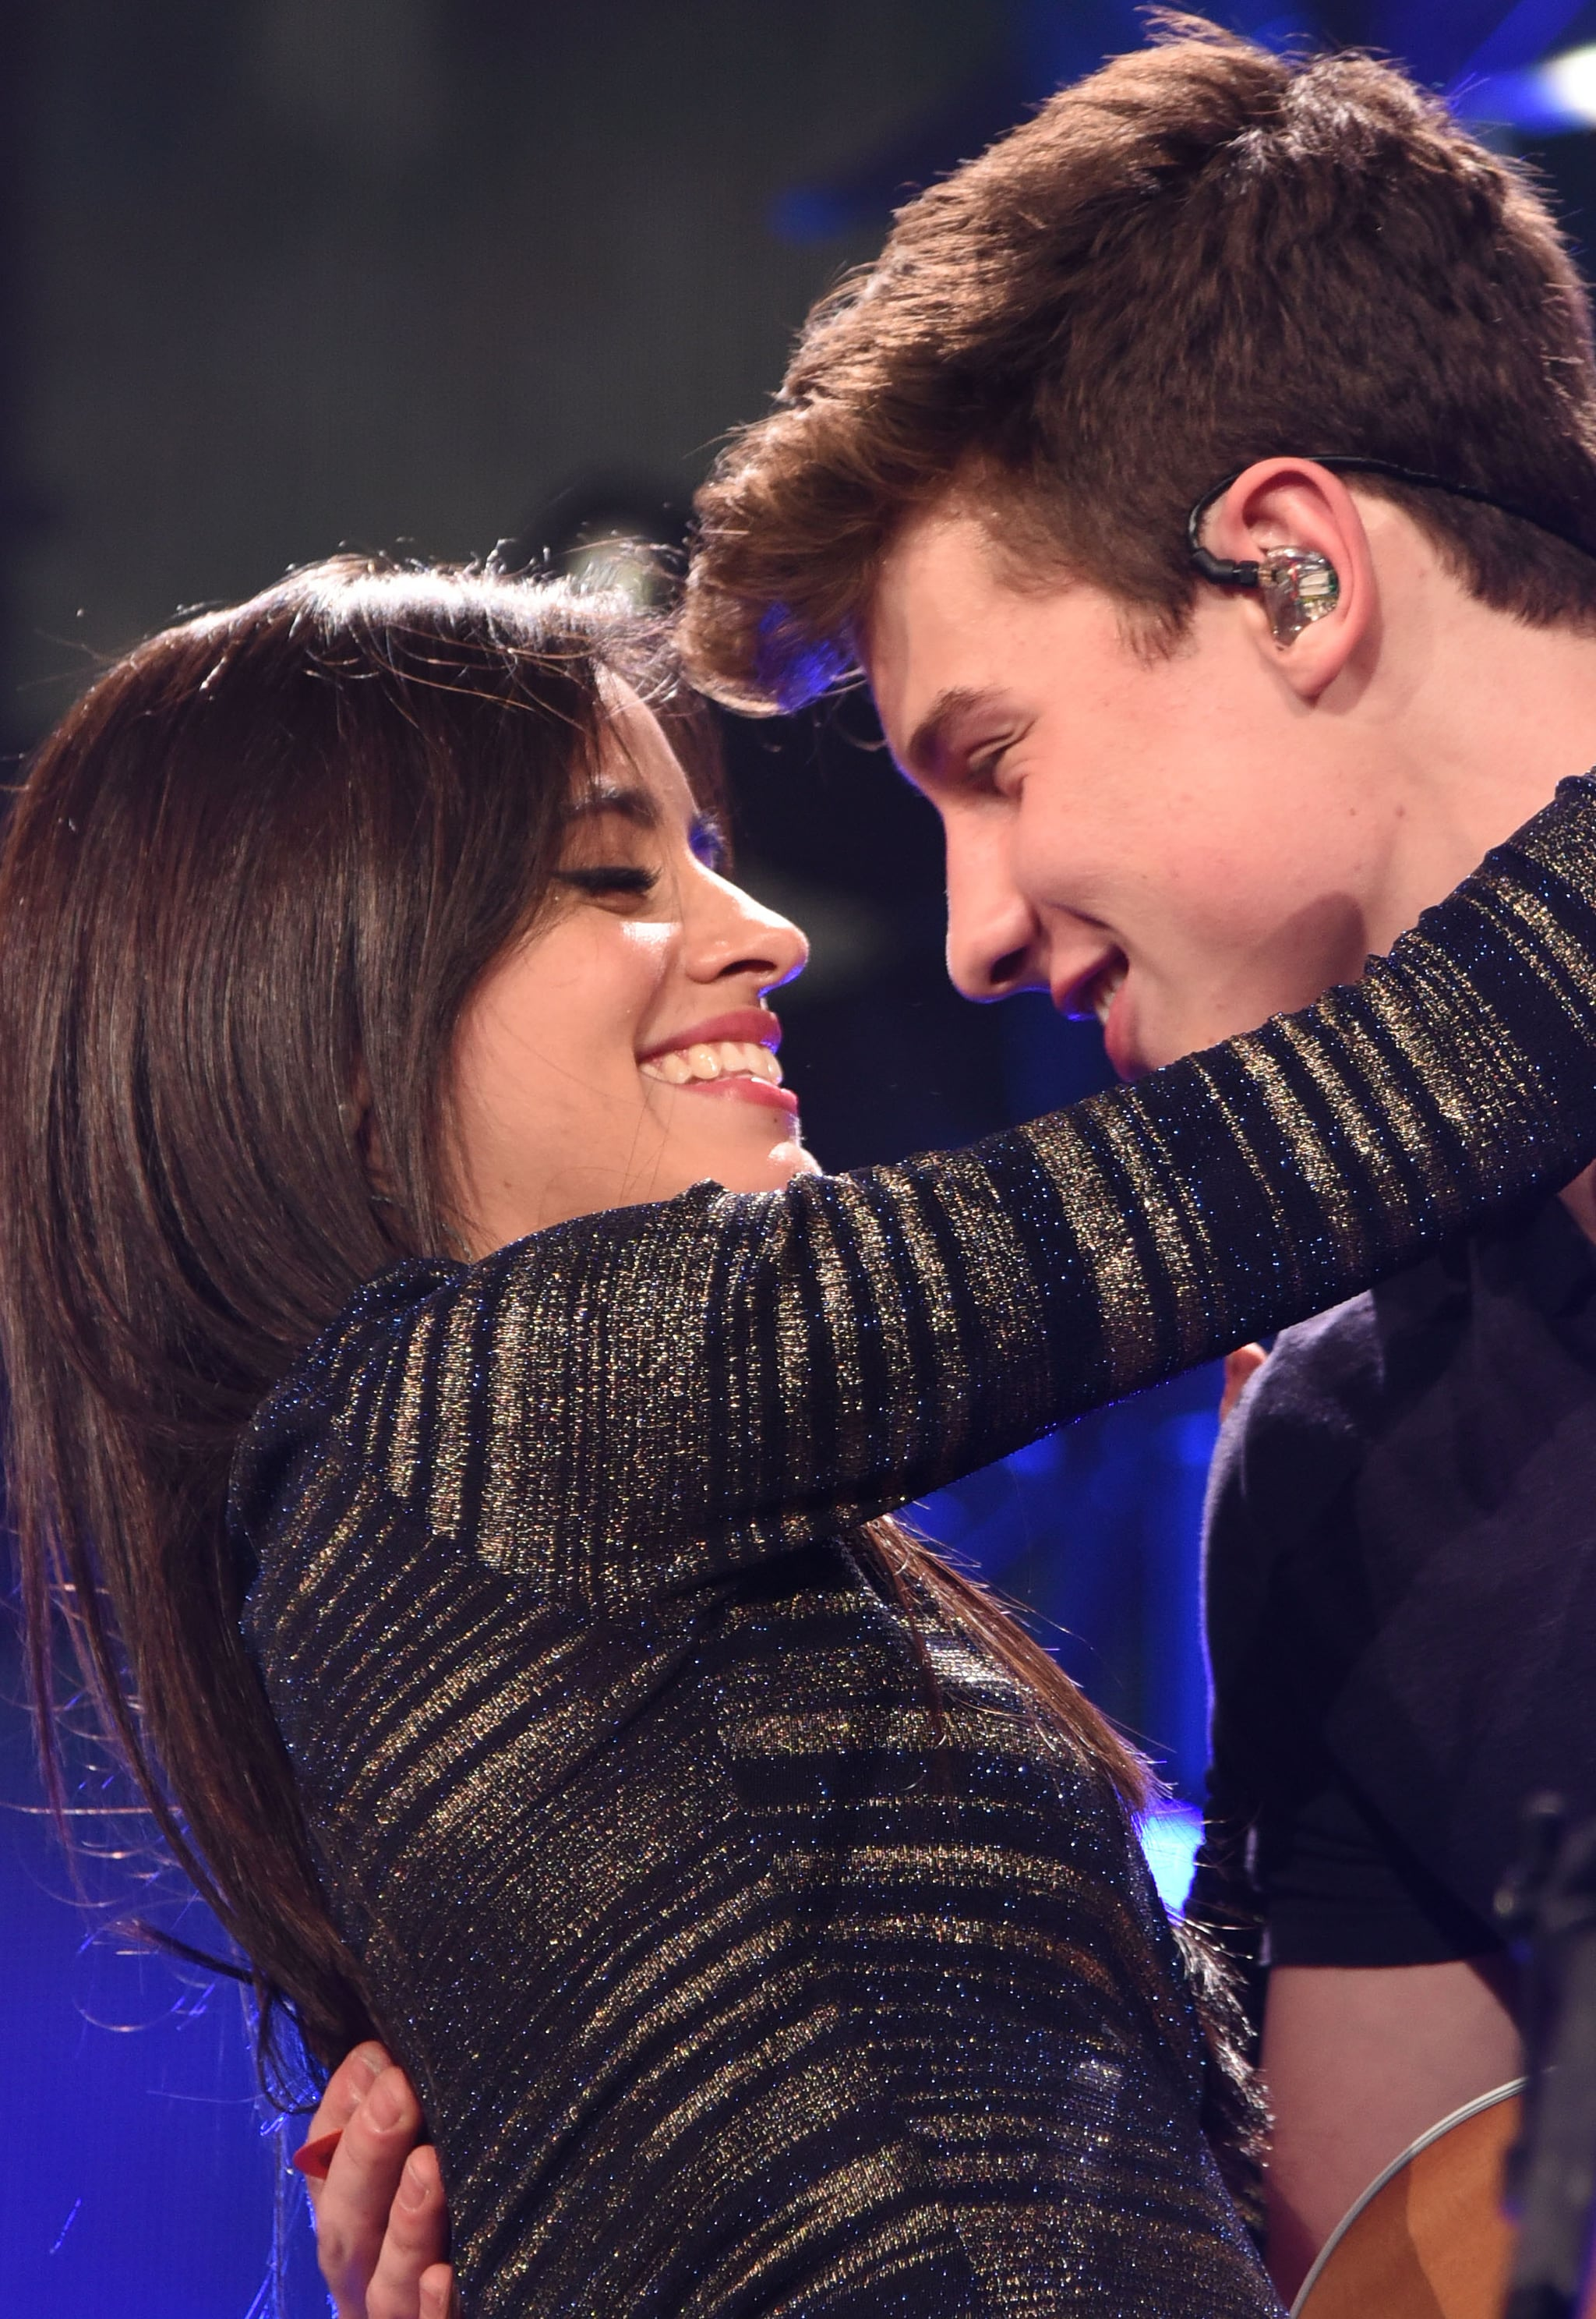 CHICAGO, IL - DECEMBER 16:  Singer Camila Cabello of Fifth Harmony (L) performs with musician Shawn Mendes onstage during 103.5 KISS FM's Jingle Ball 2015 presented by Capital One at Allstate Arena on December 16, 2015 in Chicago, Illinois.  (Photo by C Flanigan/Getty Images)